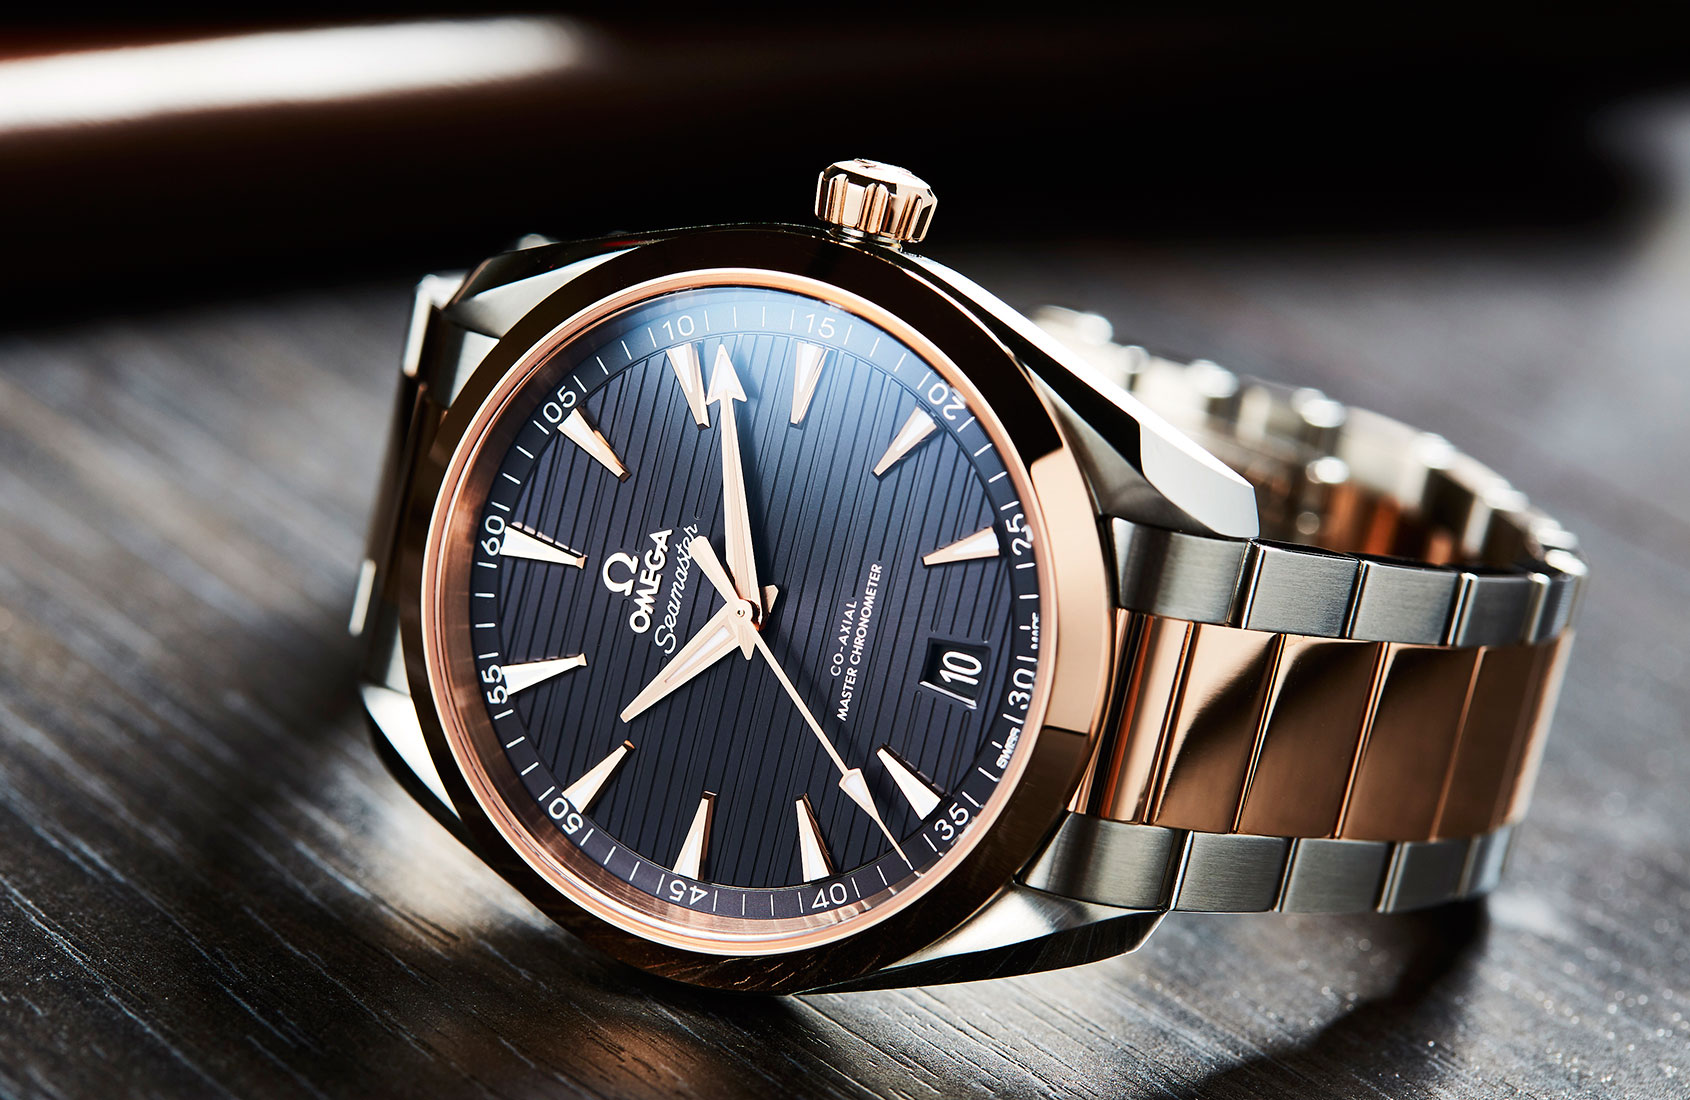 Omega Seamaster Aqua Terra Is This The Only Watch You